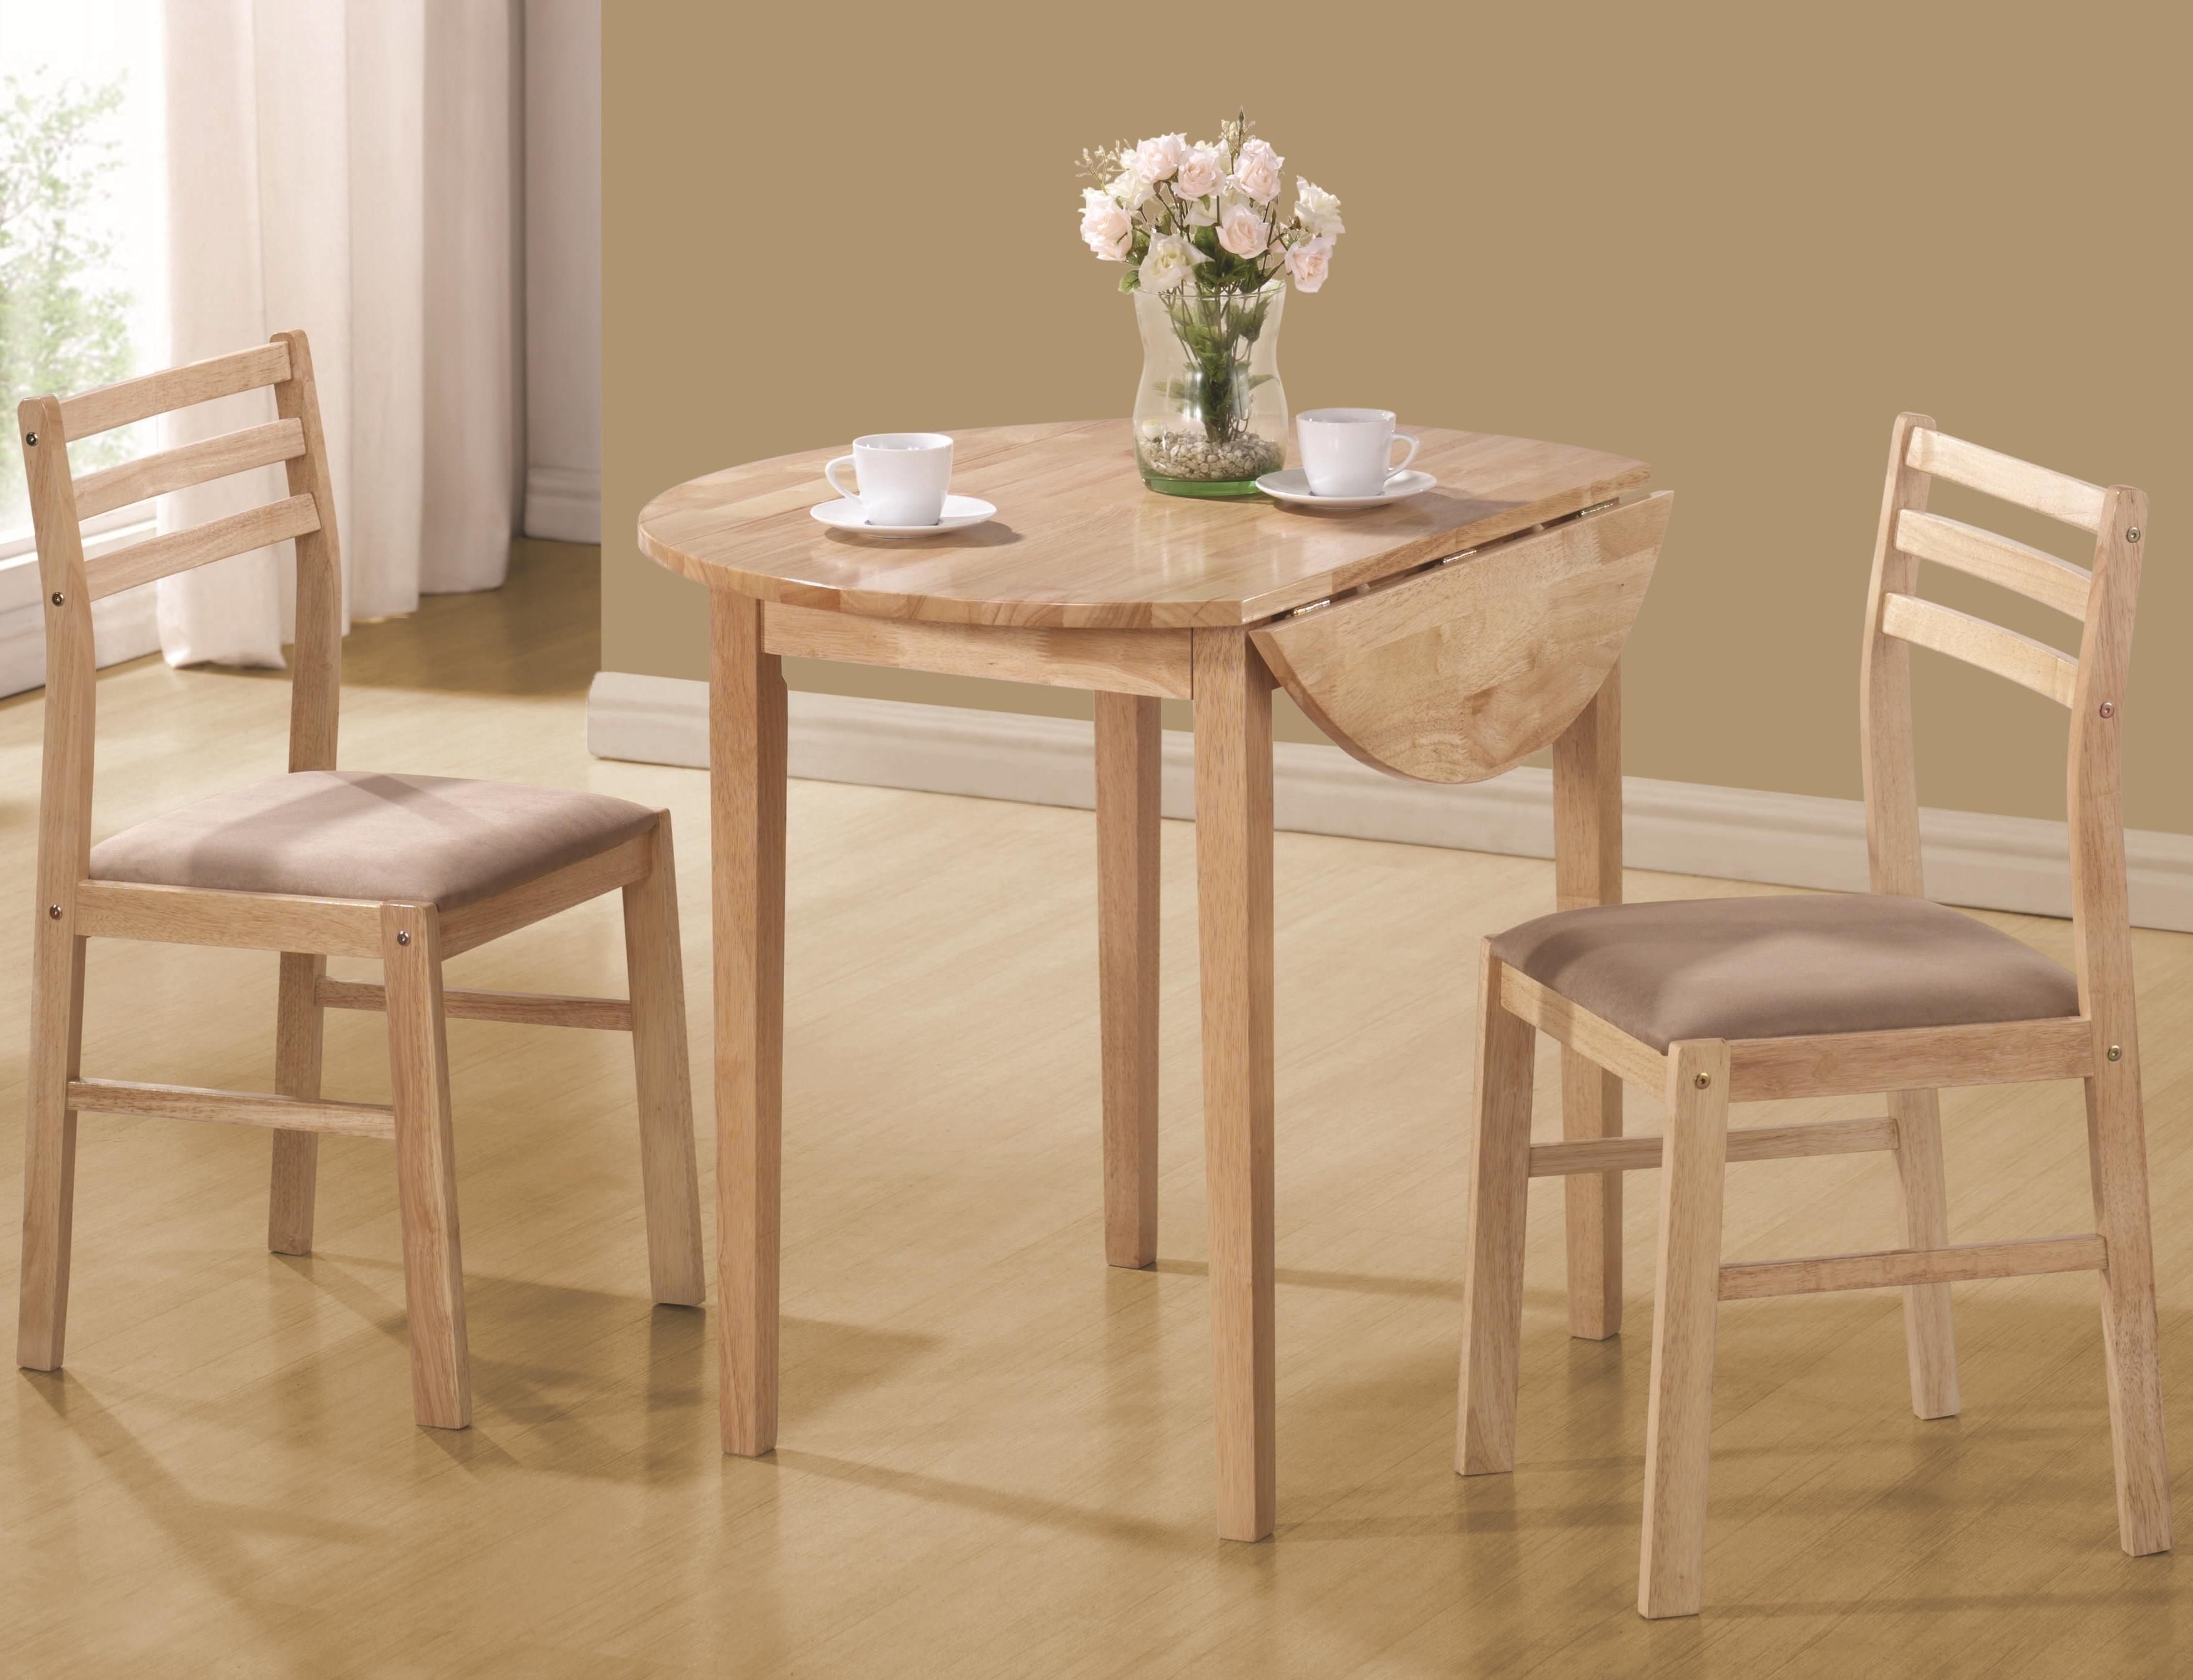 Coaster Dinettes Casual 3 Piece Table  Chair Set  Value City Furniture  Dining 3Piece Sets